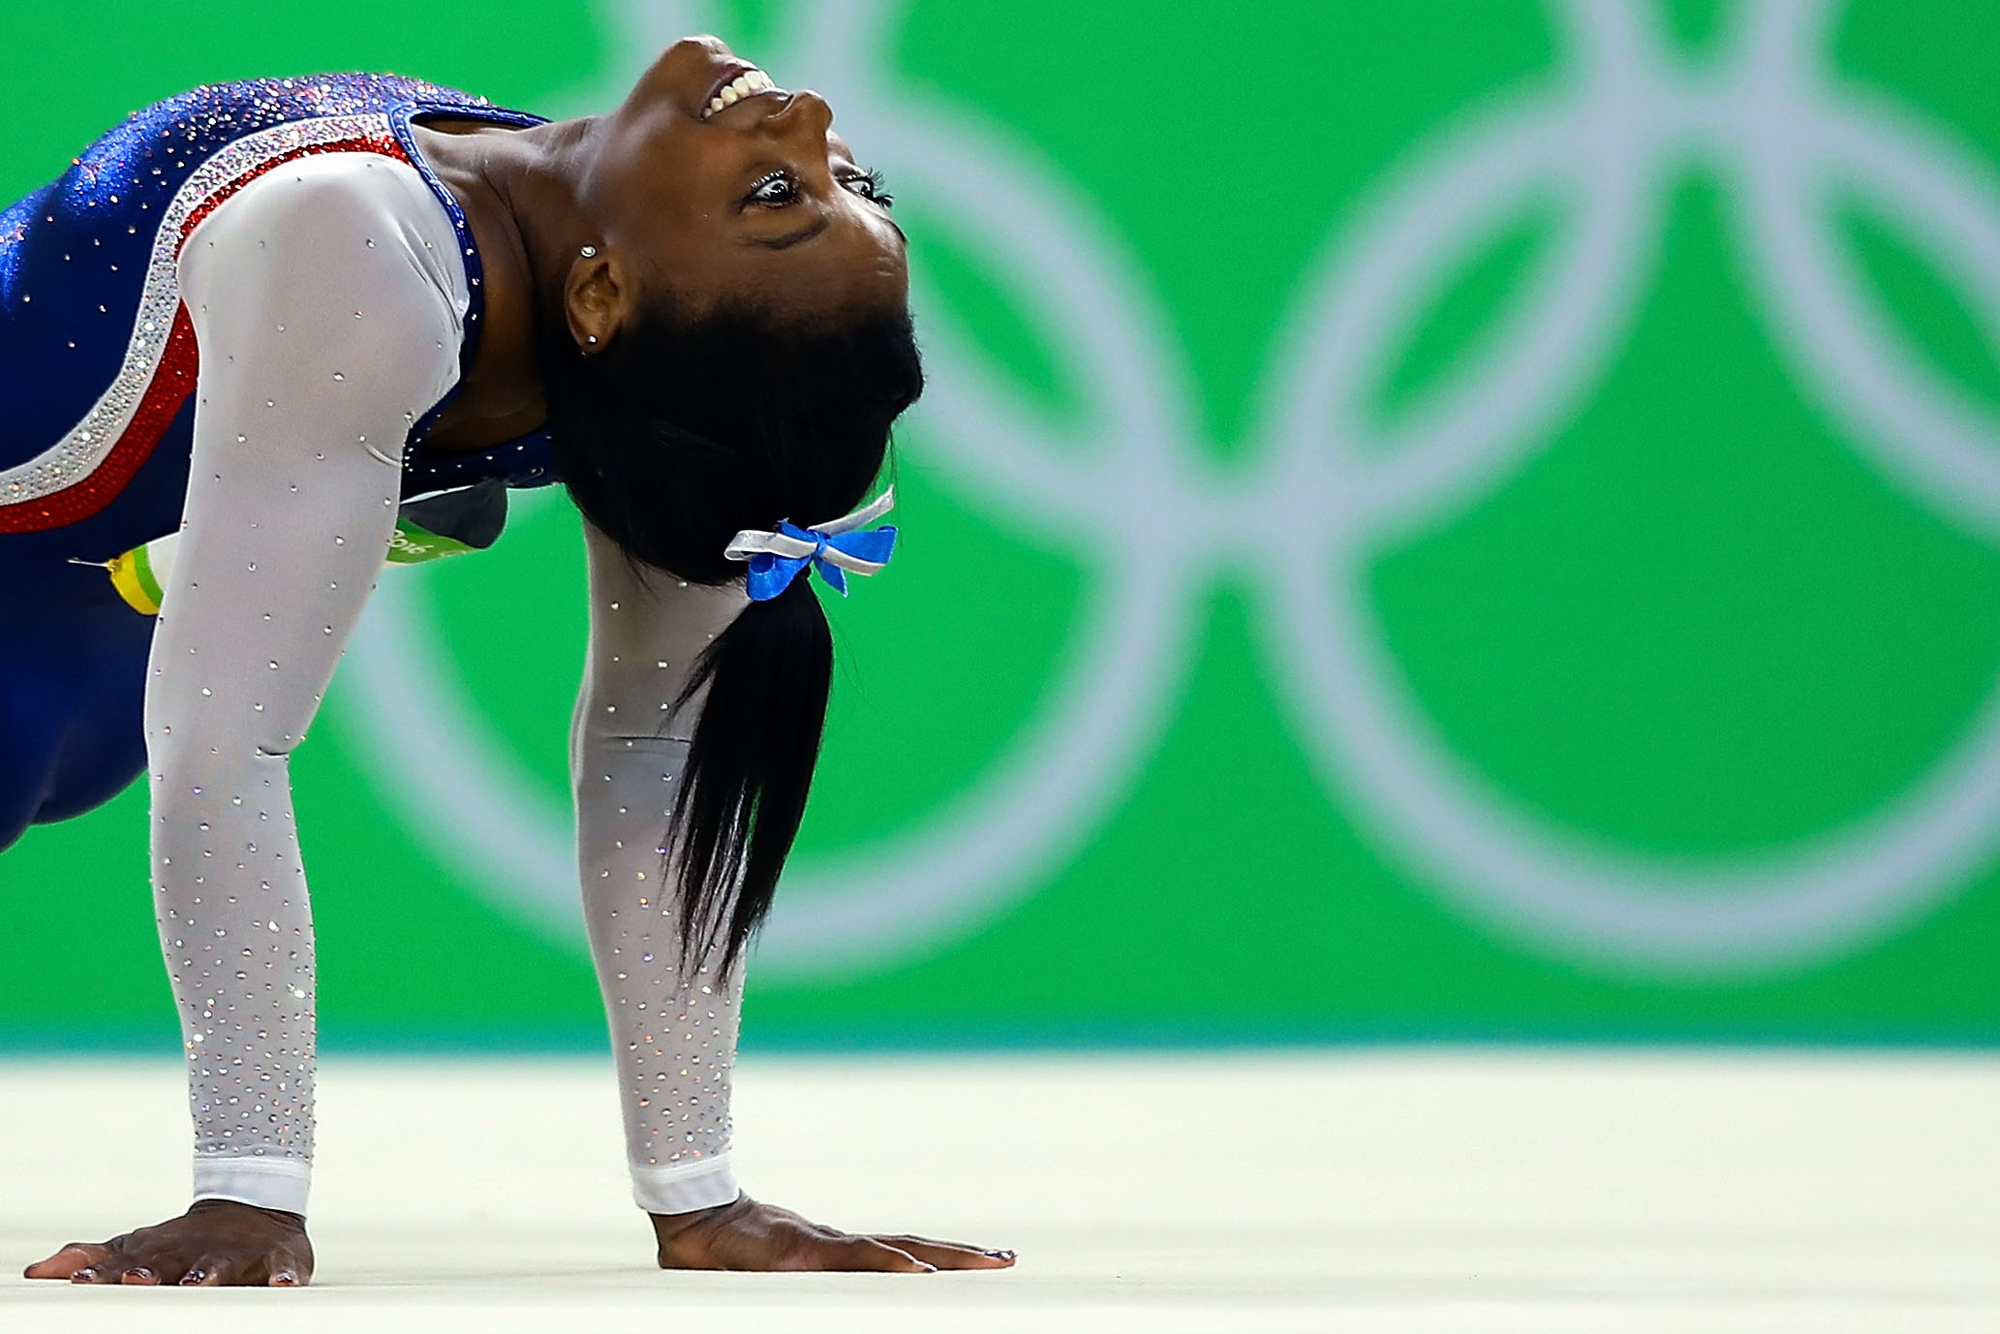 Simone Biles of the United States competes on the floor during the Women's Individual All Around Final on Day 6 of the 2016 Rio Olympics at Rio Olympic Arena on August 11, 2016 in Rio de Janeiro, Brazil.